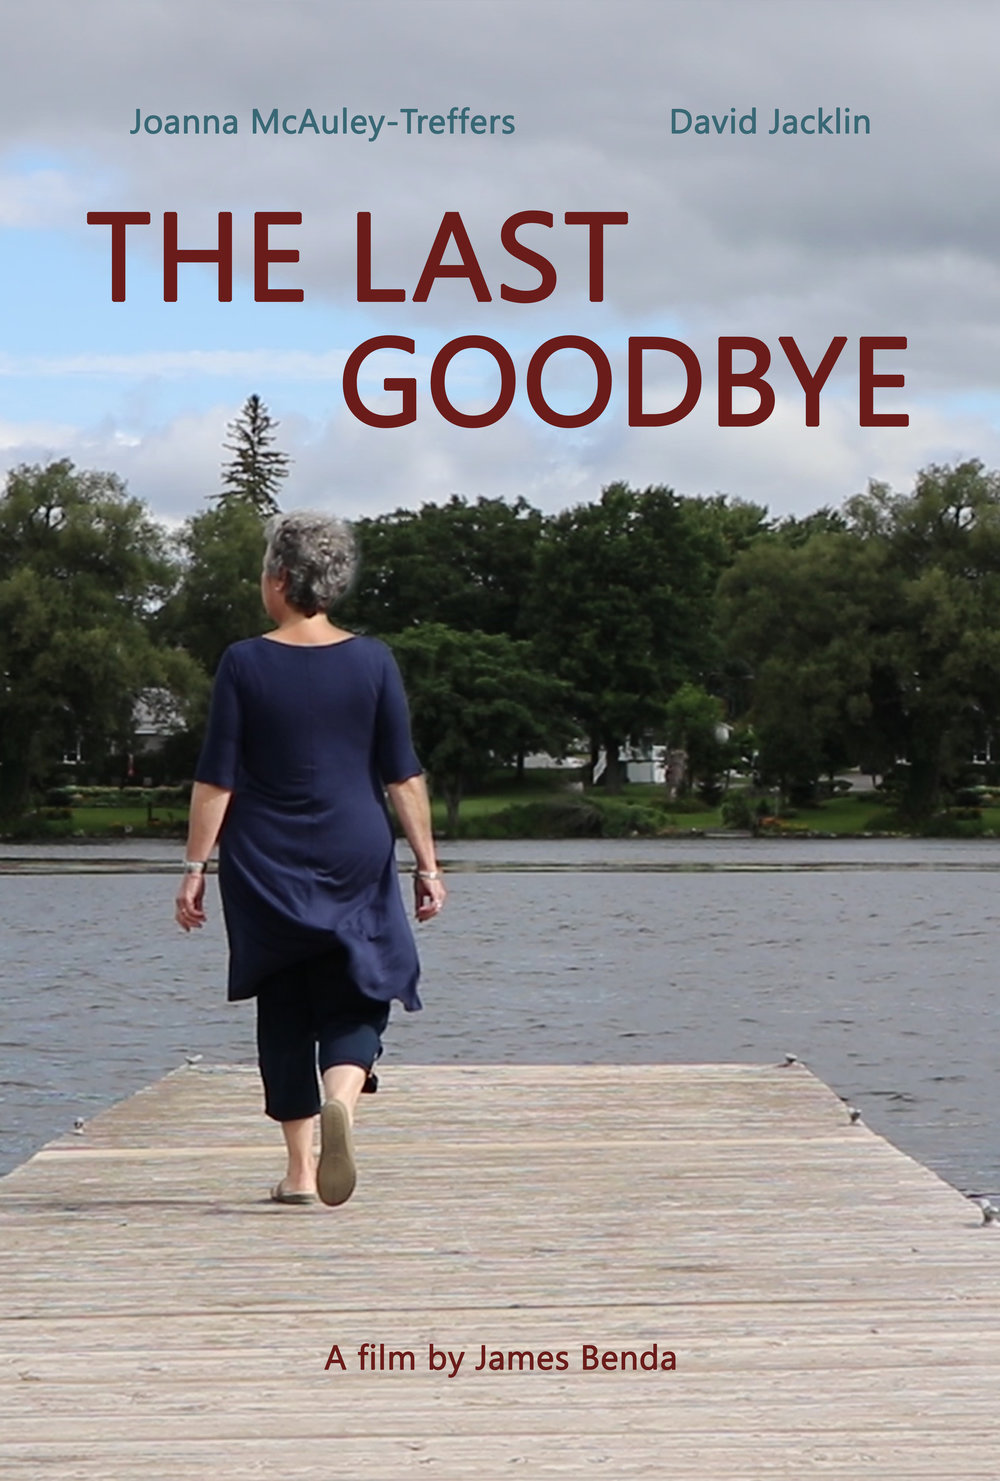 The Last Goodbye-Poster.jpg